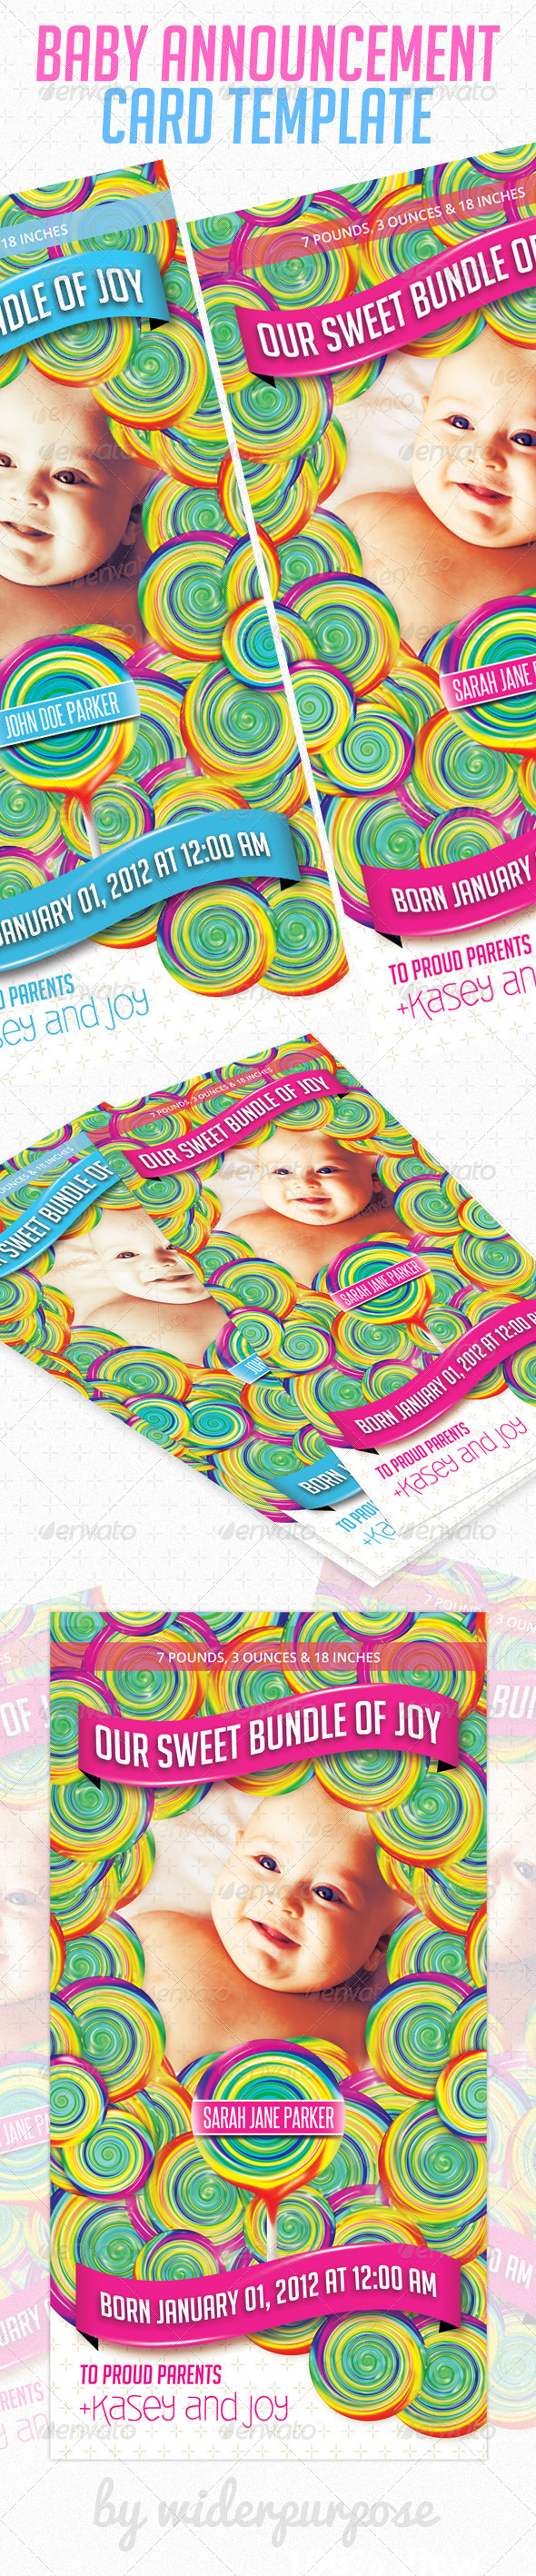 GraphicRiver Baby Announcement Card PSD Template 3928297